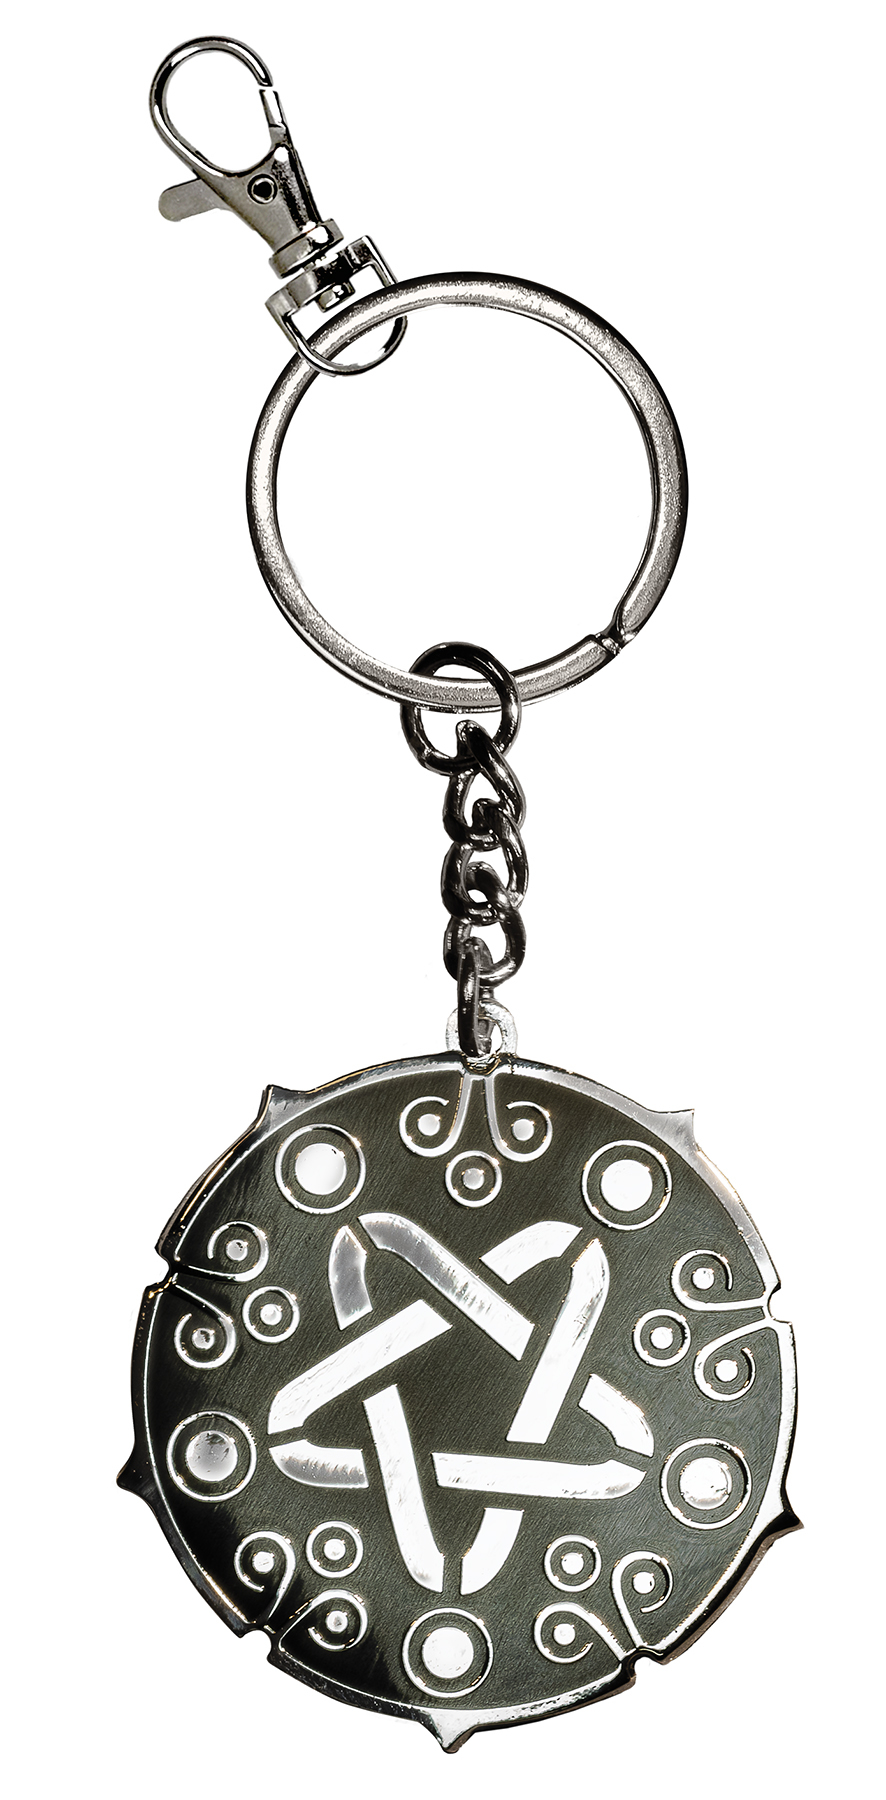 WITCHER 3 YENNEFER MEDALLION KEYCHAIN